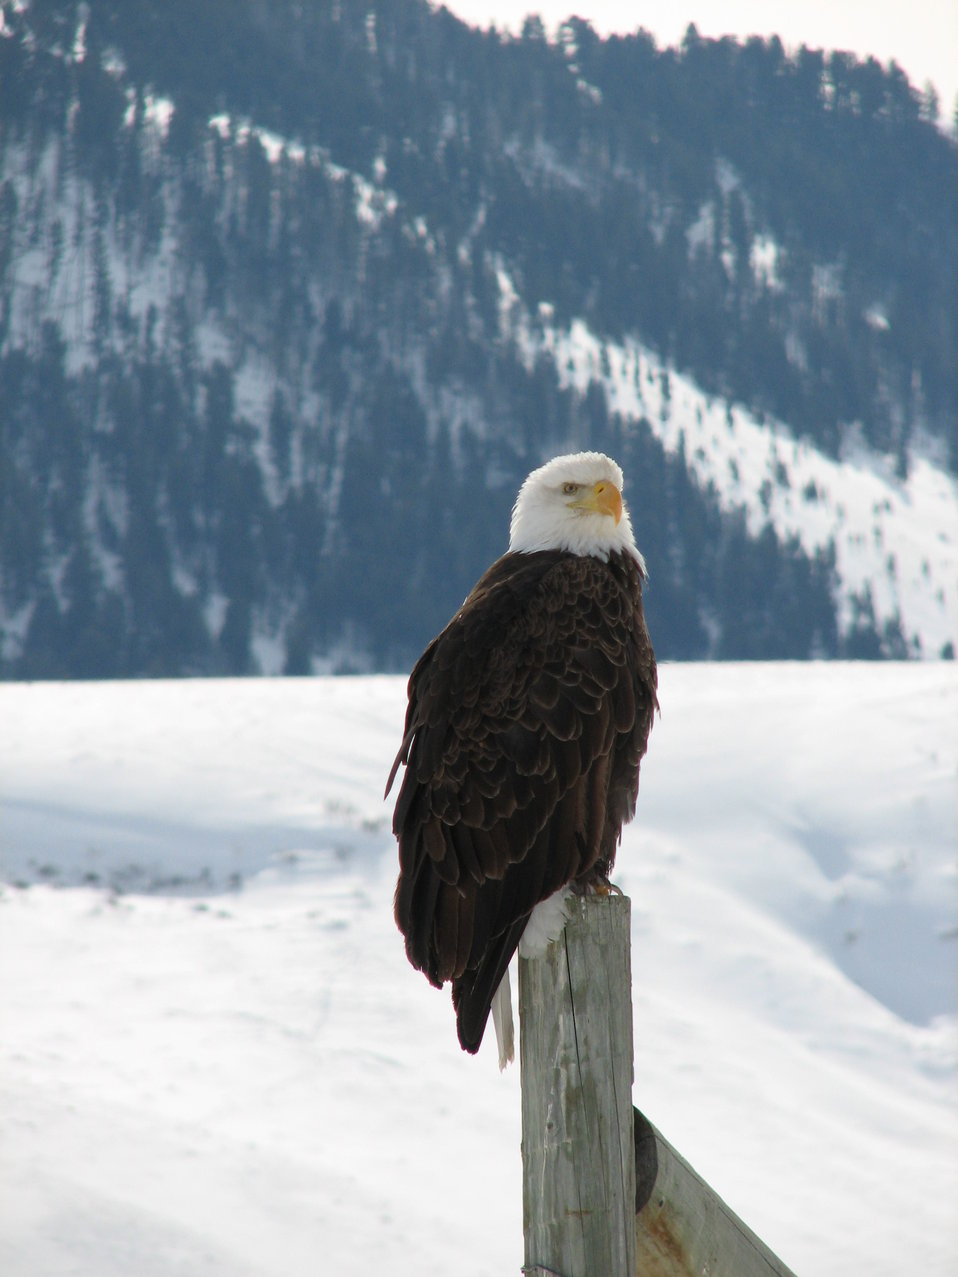 A Watchful Eagle Keeps Post on a Winter Day